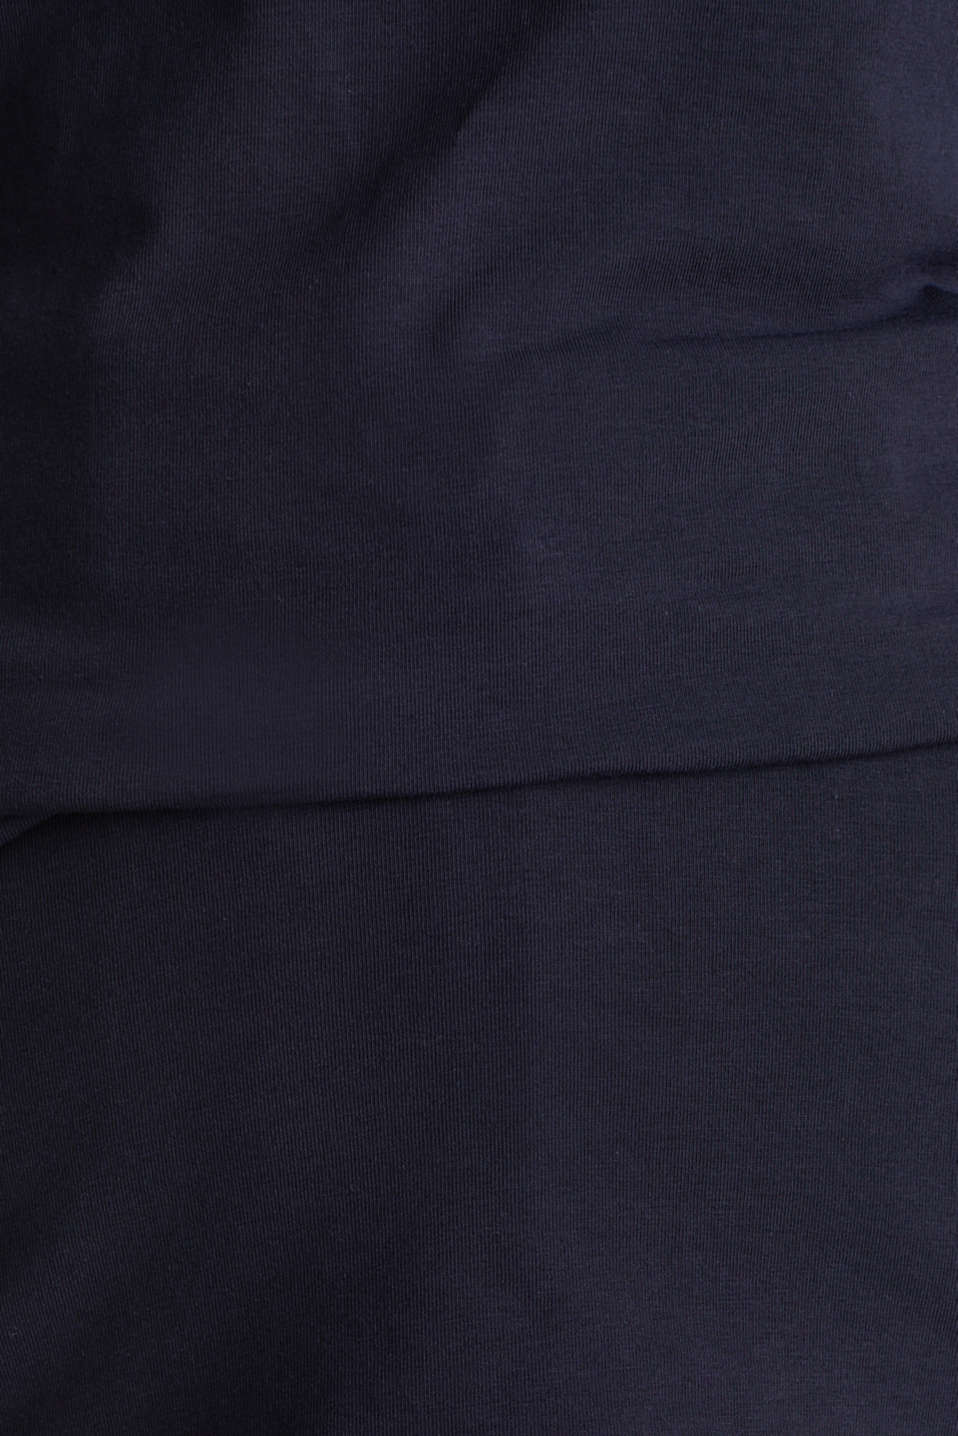 Stretch T-shirt with a scalloped trim, NAVY, detail image number 4